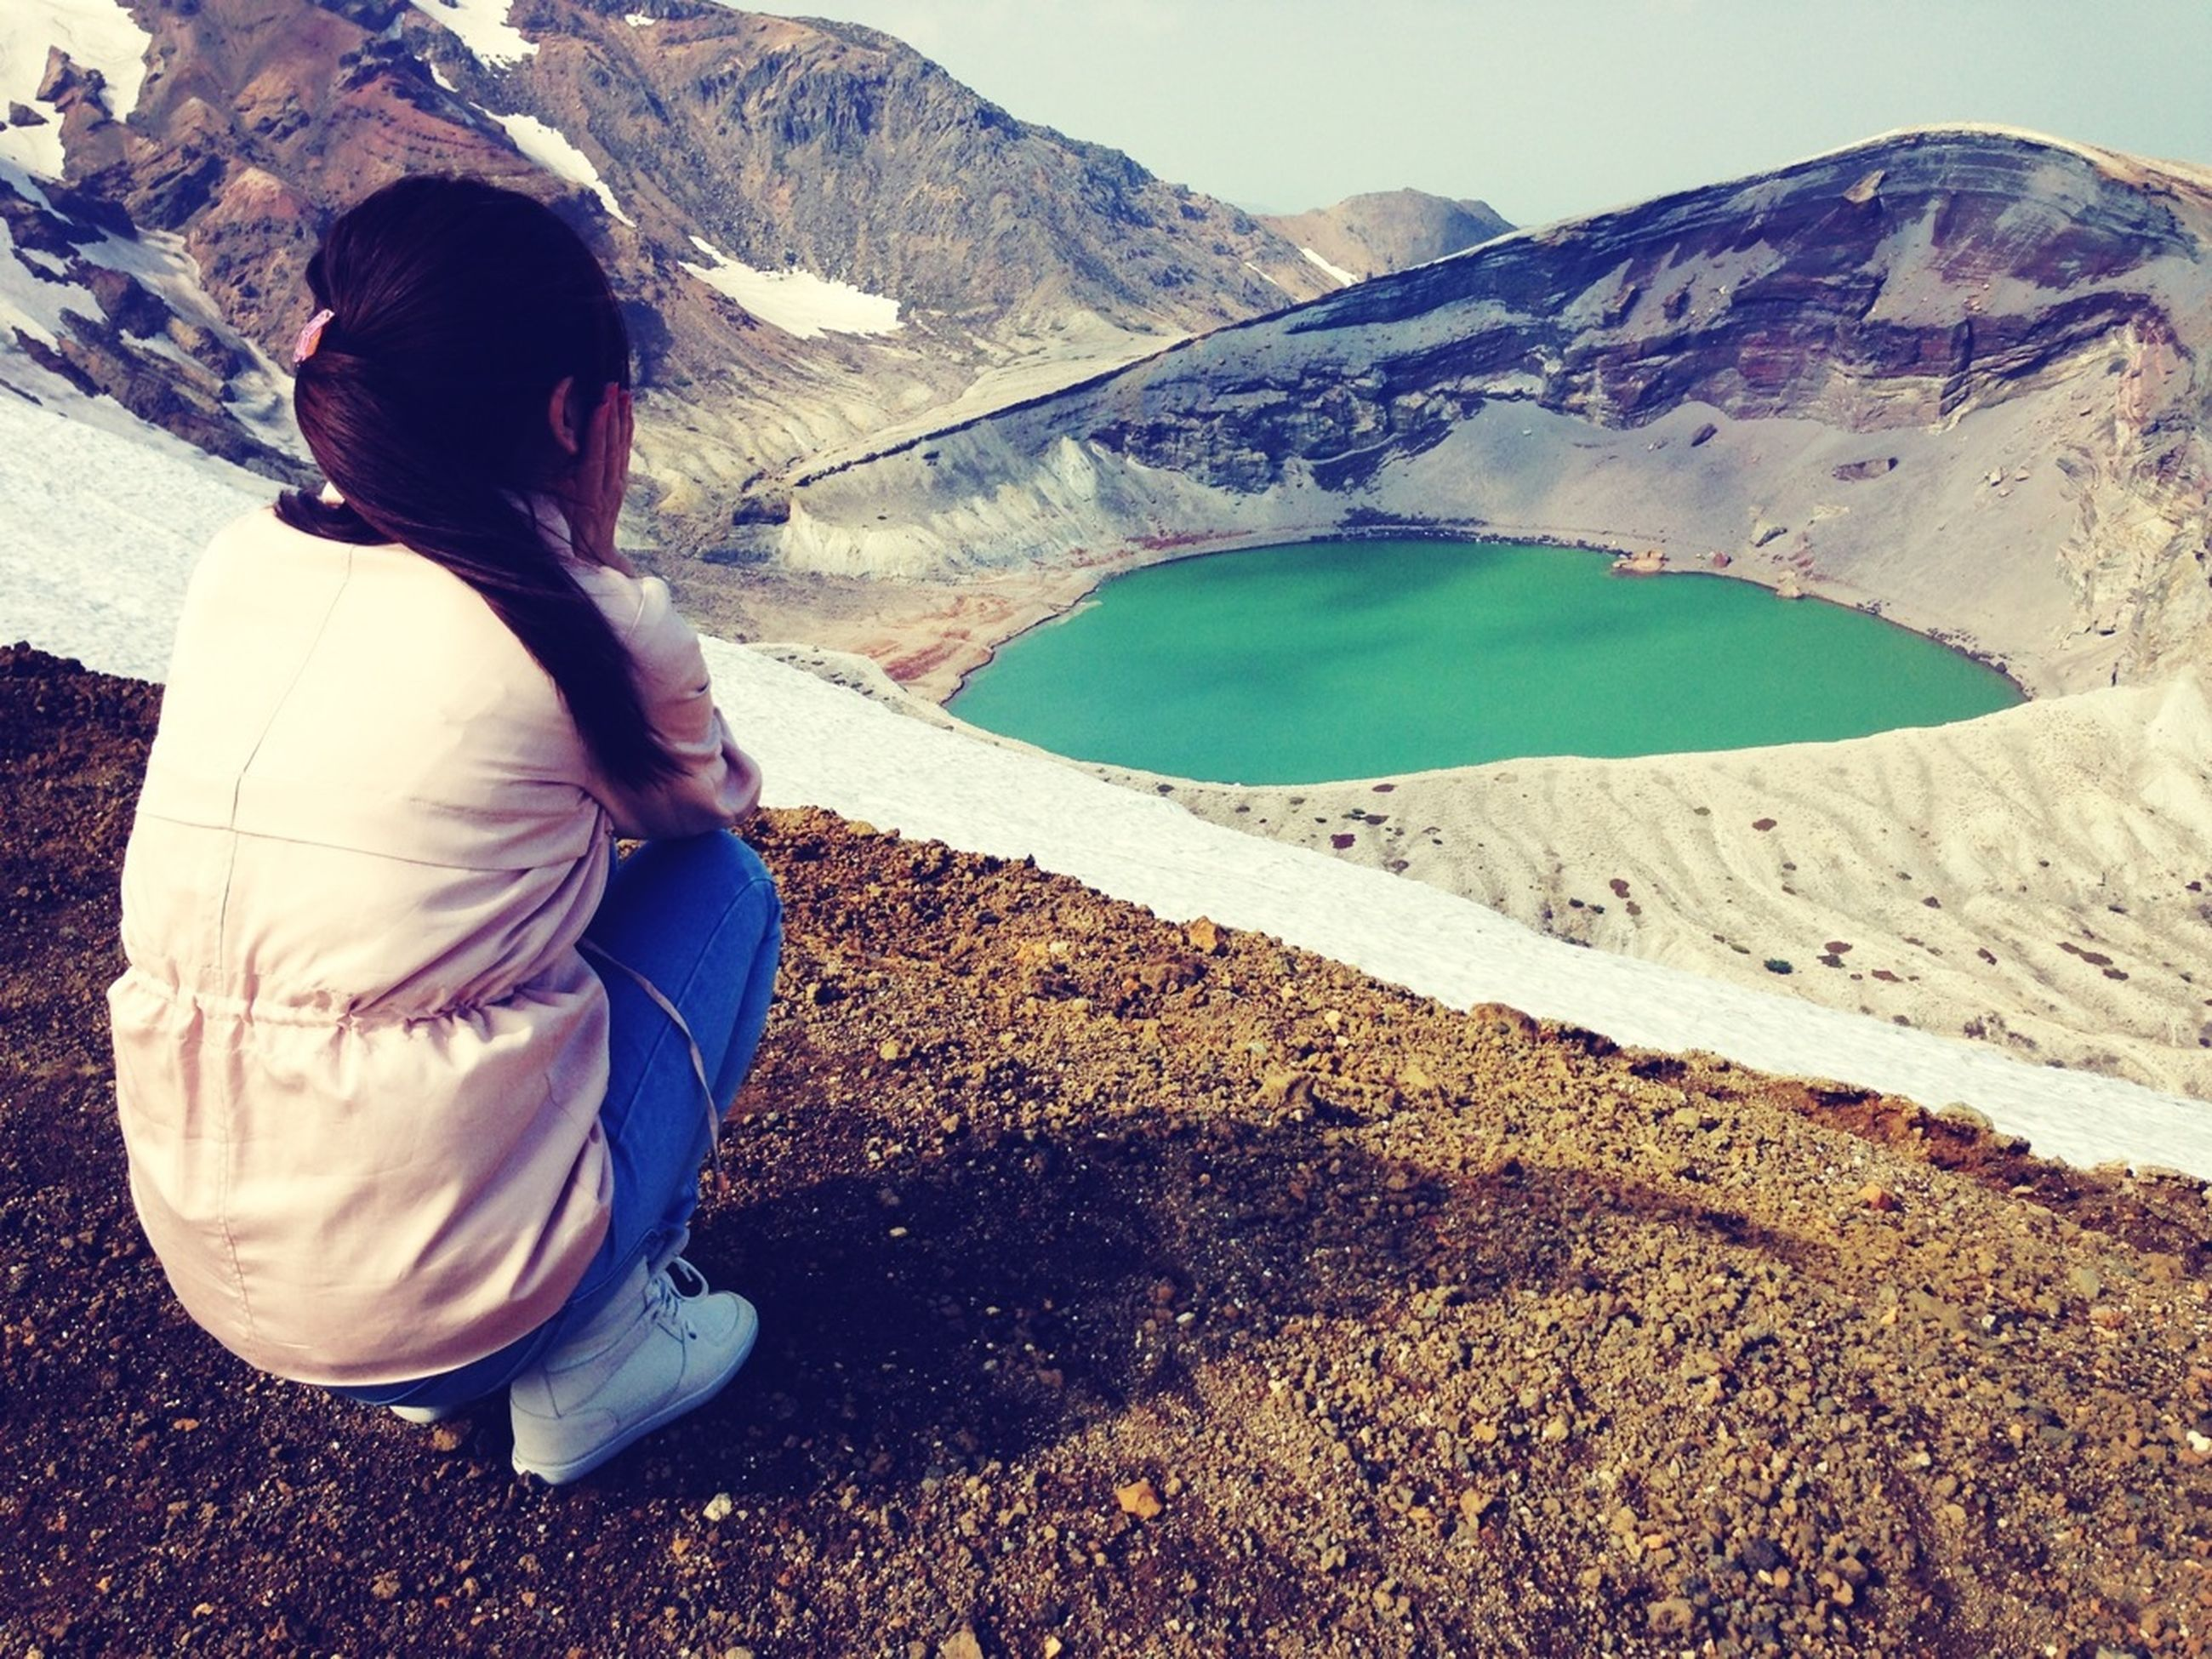 mountain, lifestyles, leisure activity, mountain range, casual clothing, full length, standing, landscape, young adult, rear view, tranquility, tranquil scene, person, nature, vacations, day, scenics